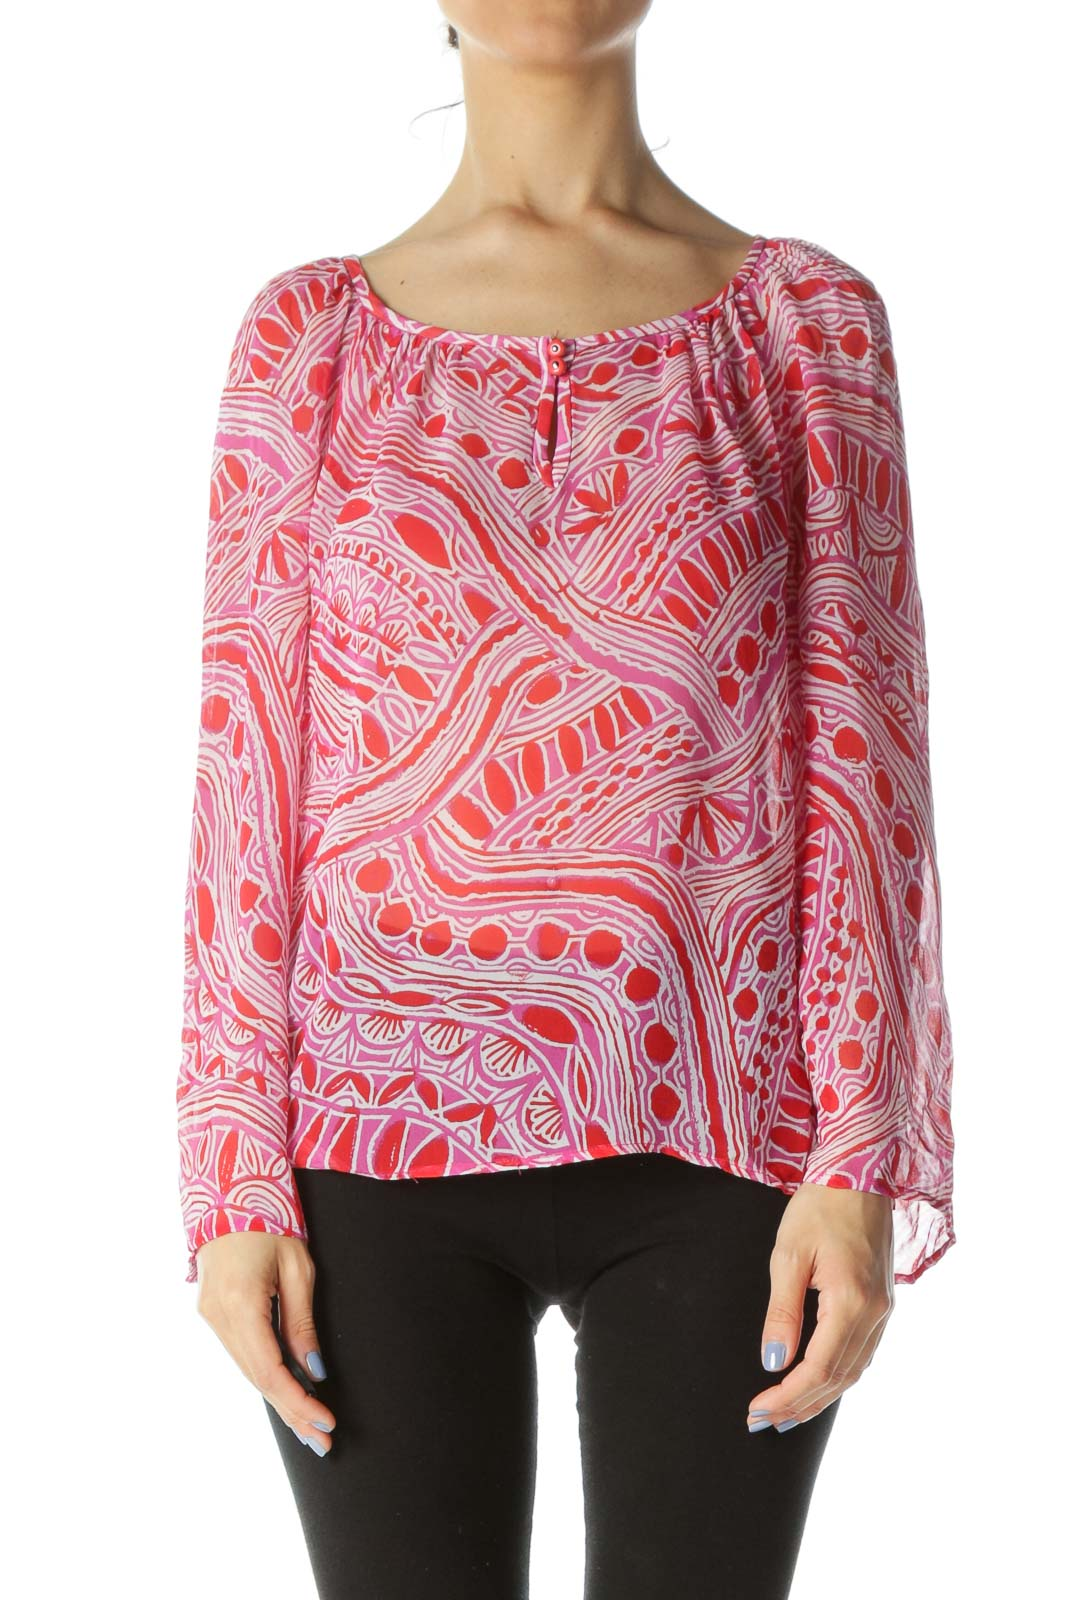 Red/Magenta-Pink/White Silk Print Keyhole See-Through Blouse